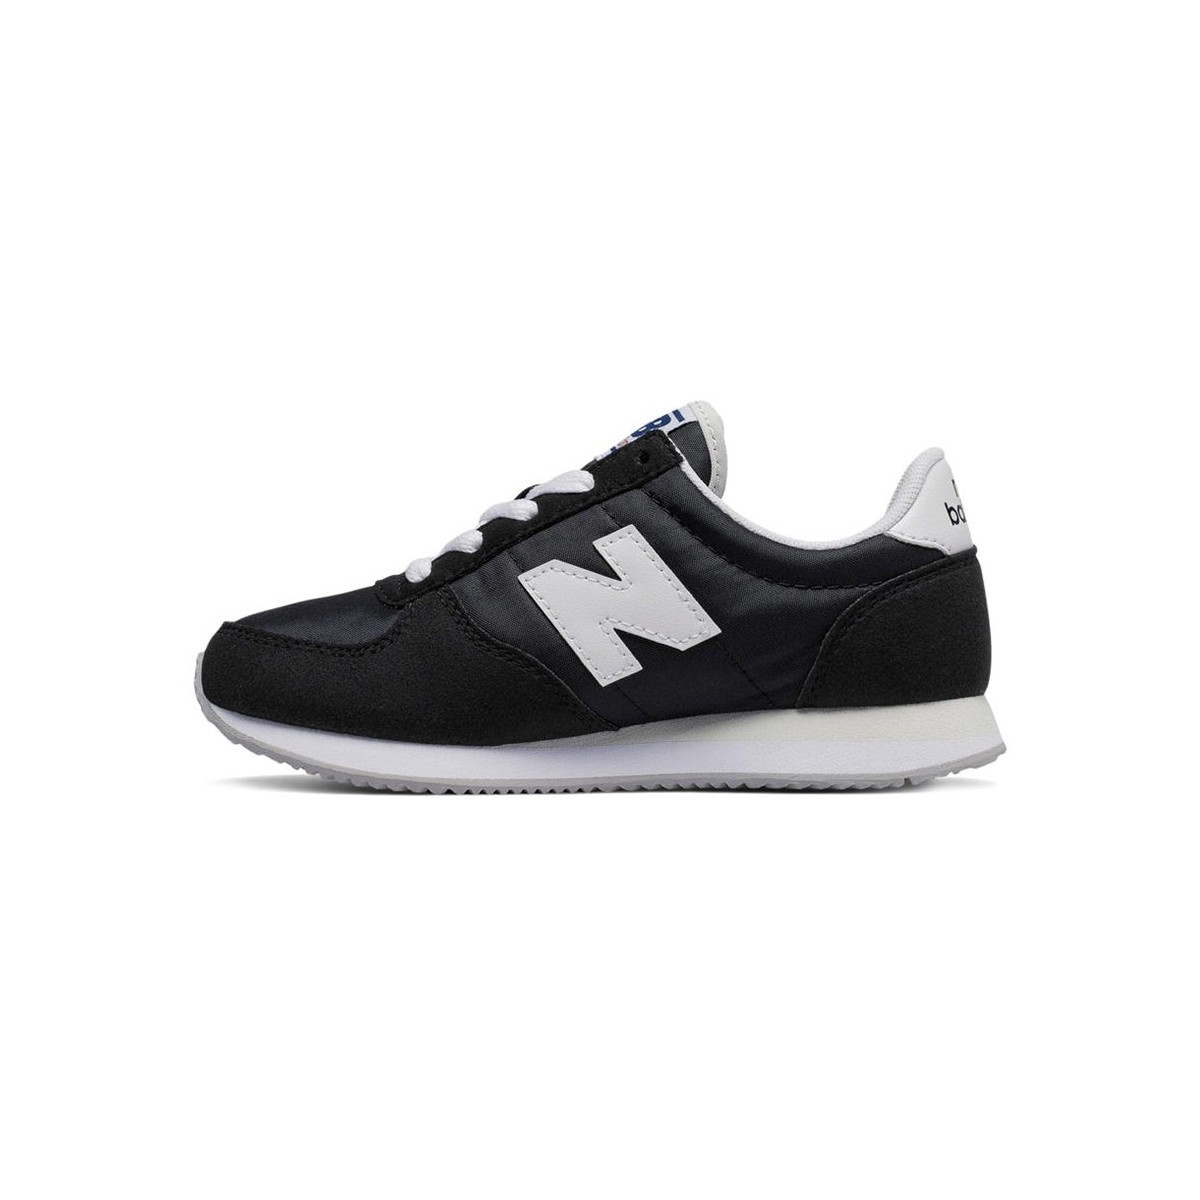 New balance kl220 bwy zapatillas mujer negras qrZHHnet